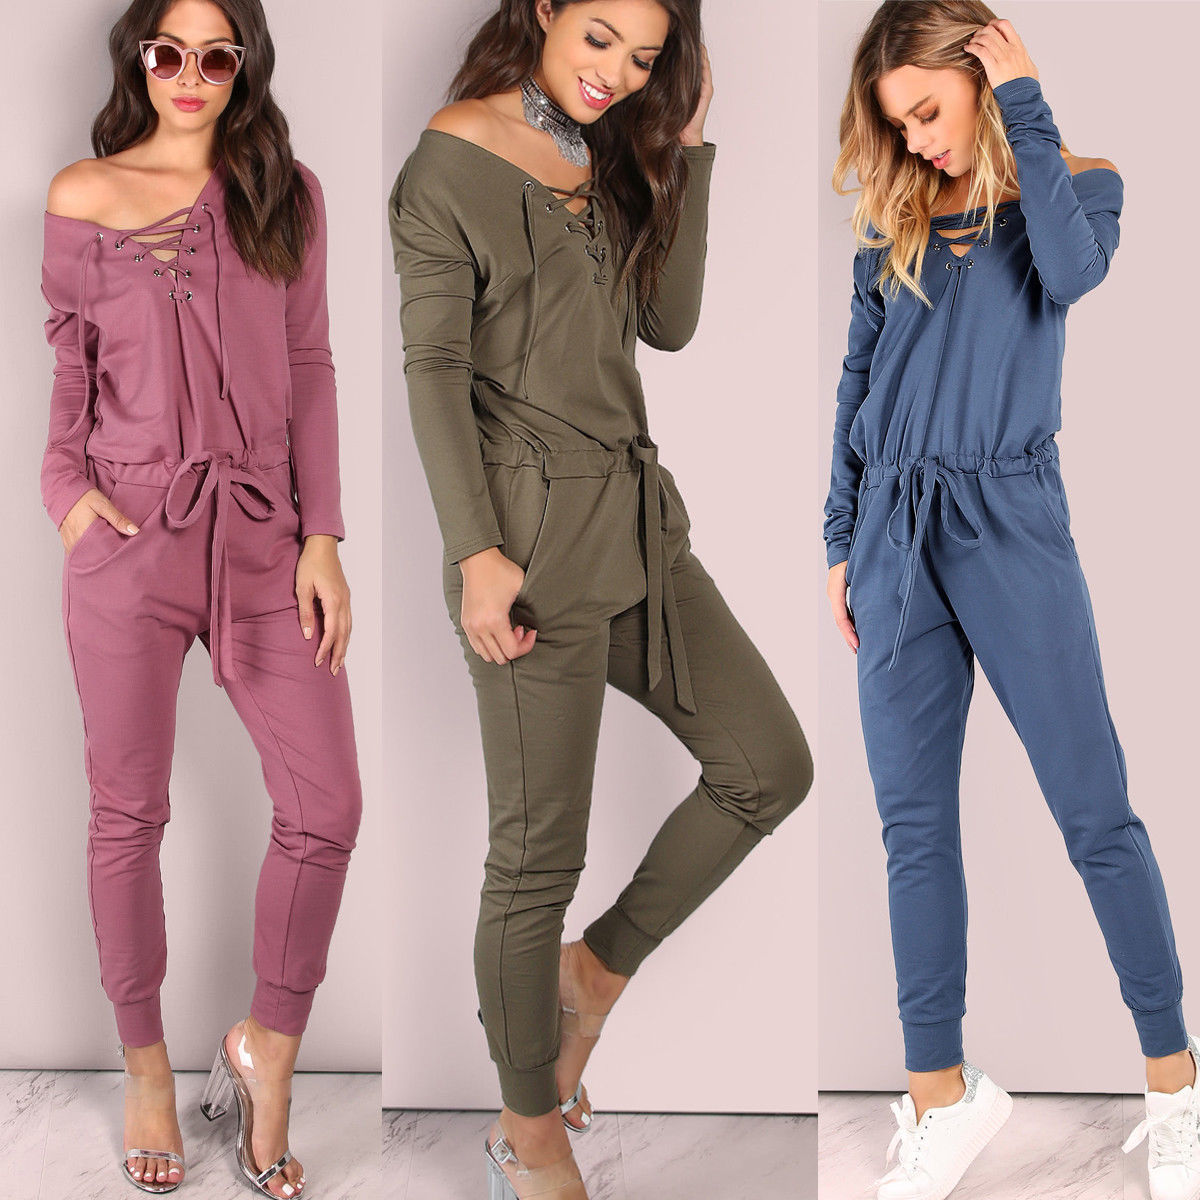 1e2f58827fa HIRIGIN Brand New Fashion Jumpsuits Girls Women Casual Long Sleeve ...